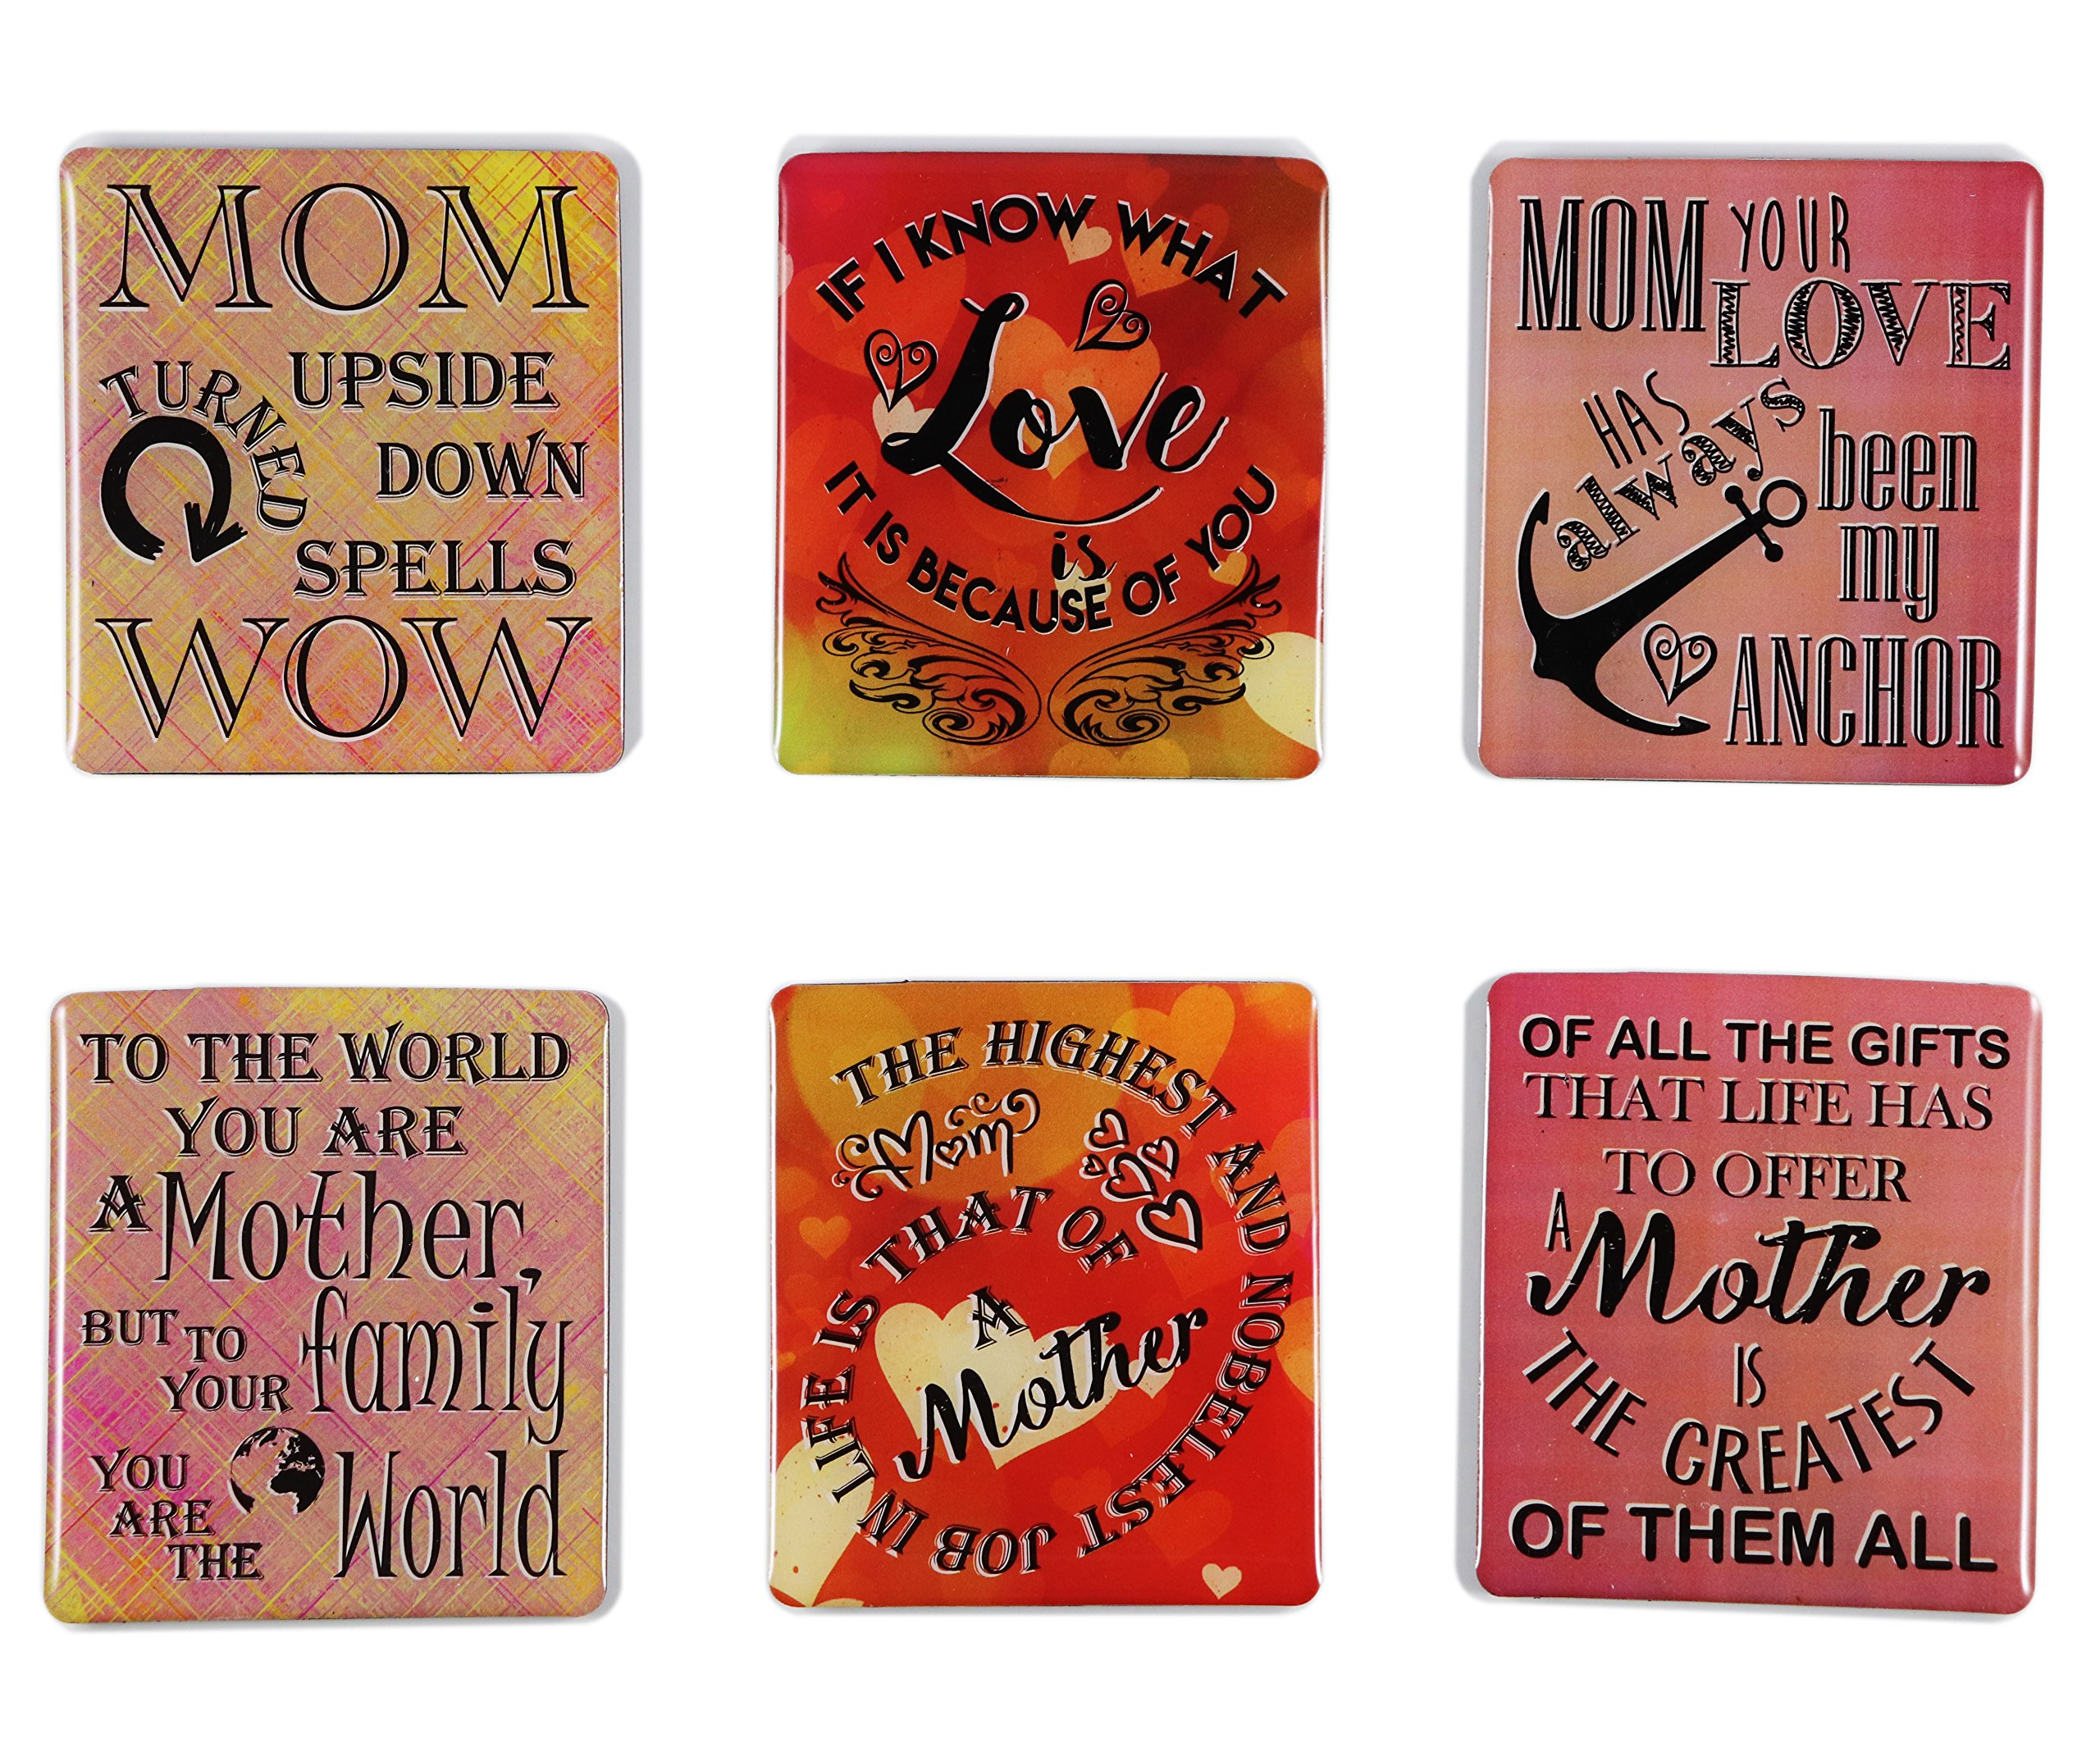 Gift for Mom 12 Piece Magnetic Picture Frames and Refrigerator Magnets with Inspirational Quotes Photo Collage by Sheen 5x7 4x6 3.5x5 2.5x3 Wallet - Mom Gifts - Gift for Mother - Birthday Gift for Mom by Sheen (Image #3)